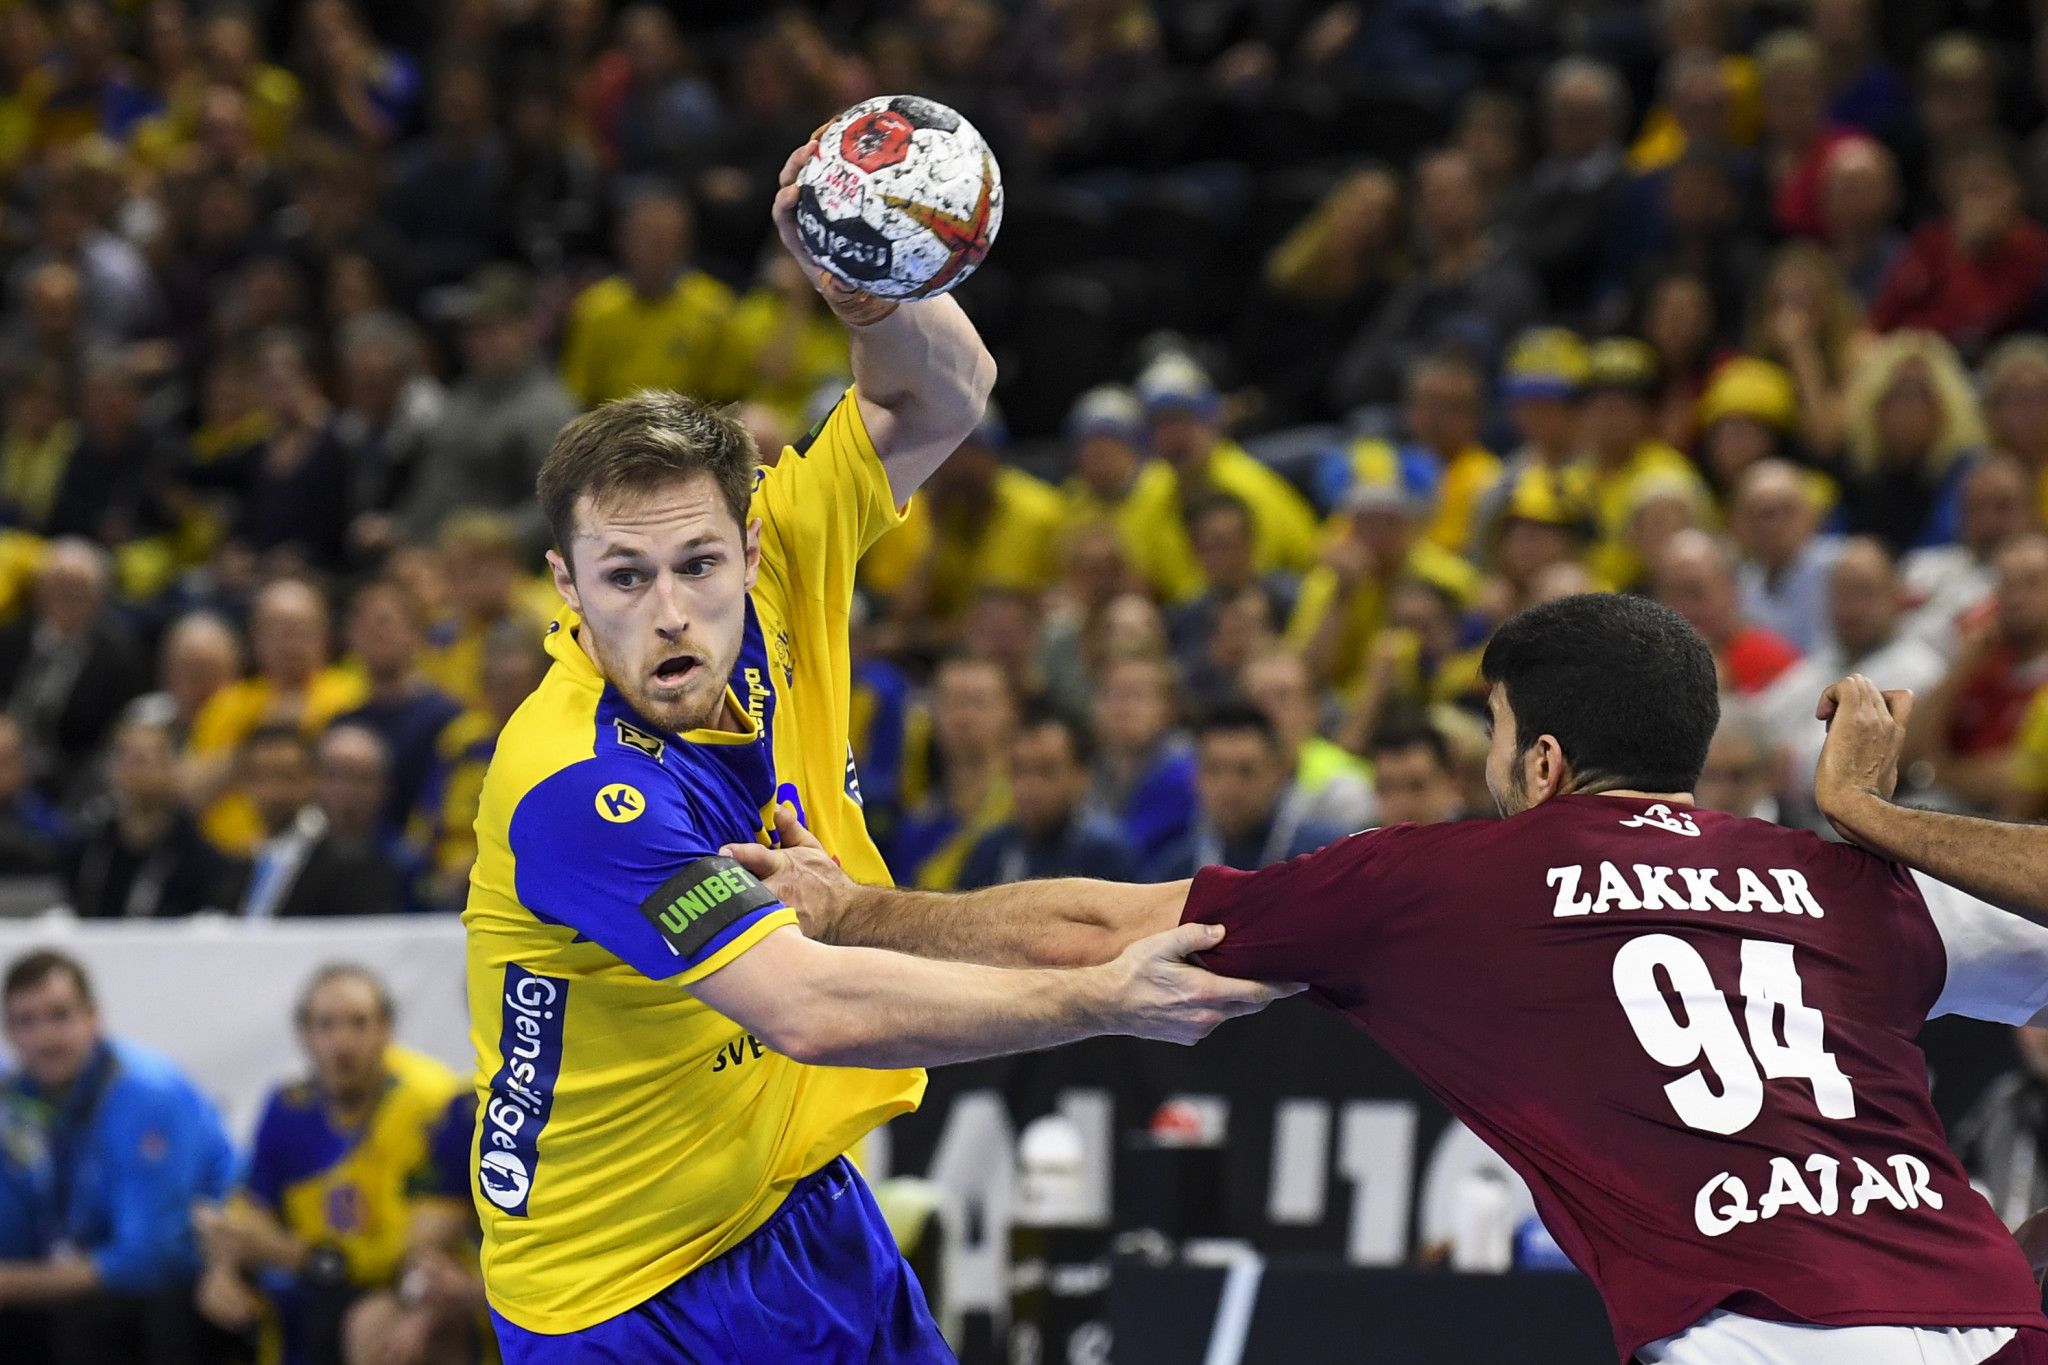 Sweden defeated Qatar in Group D of the IHF Men's Handball World Championship to remain undefeated at the competition ©Getty Images